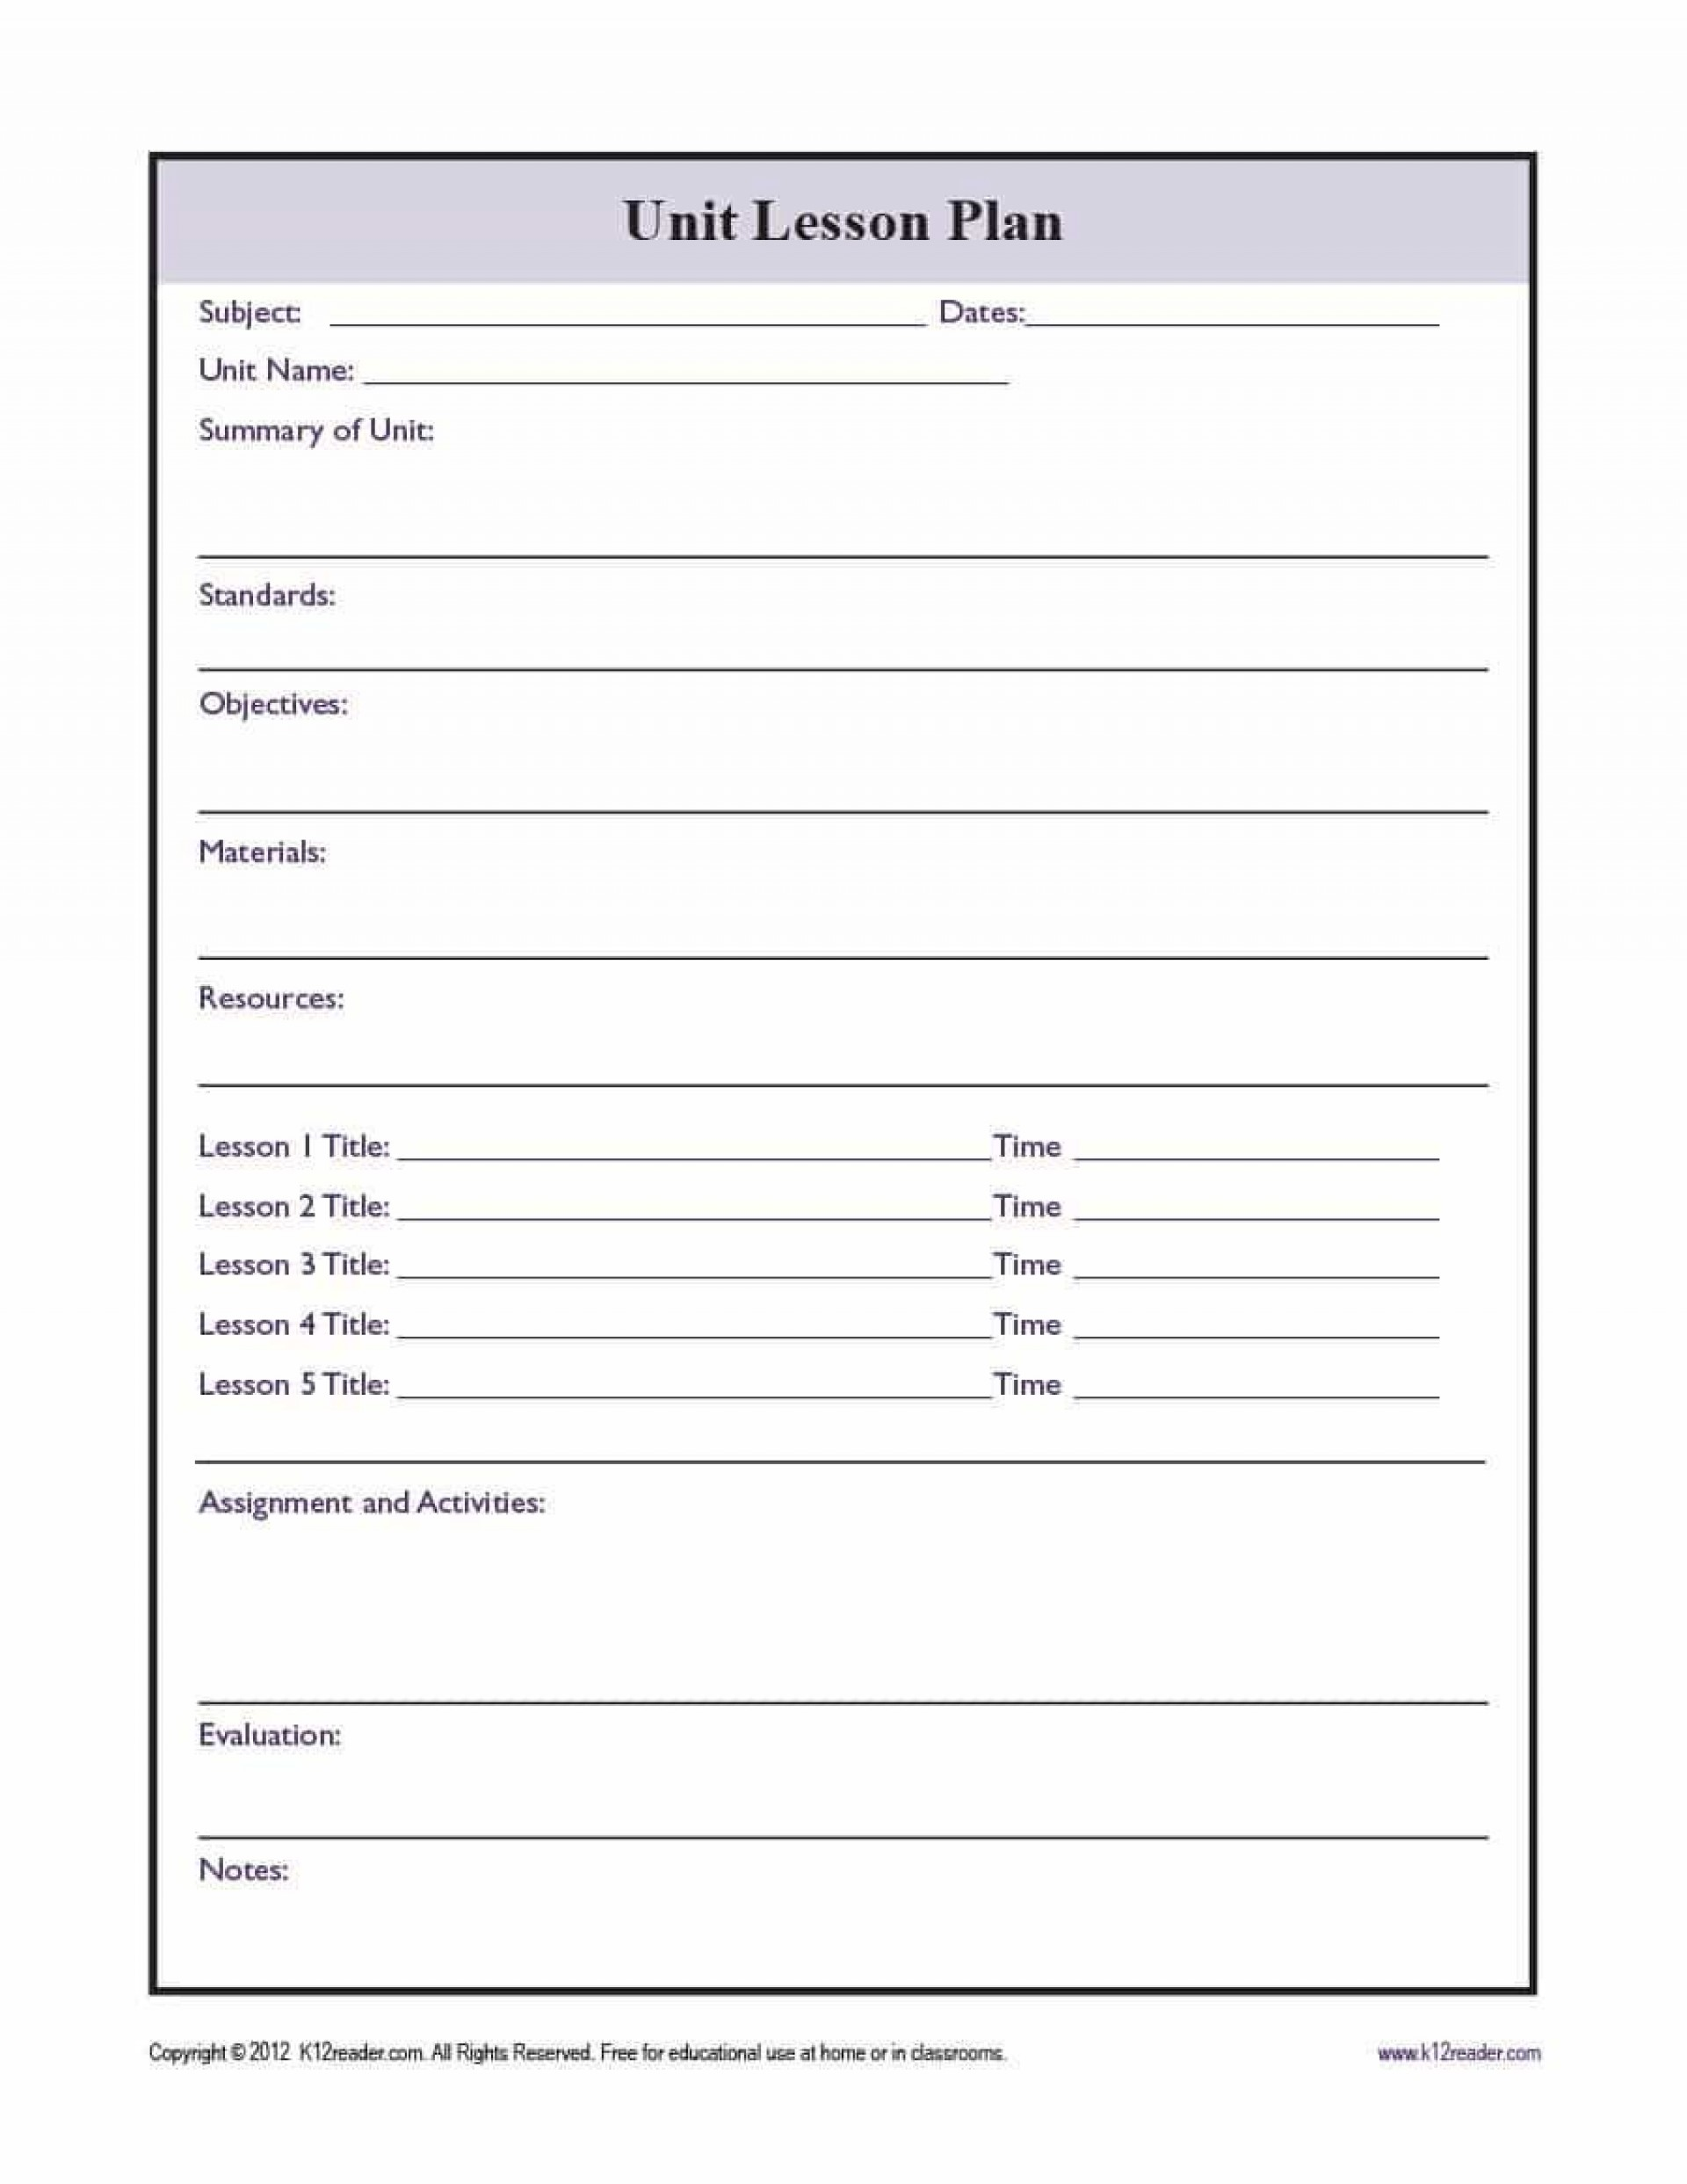 001 Formidable Free Unit Lesson Plan Template Sample 1920